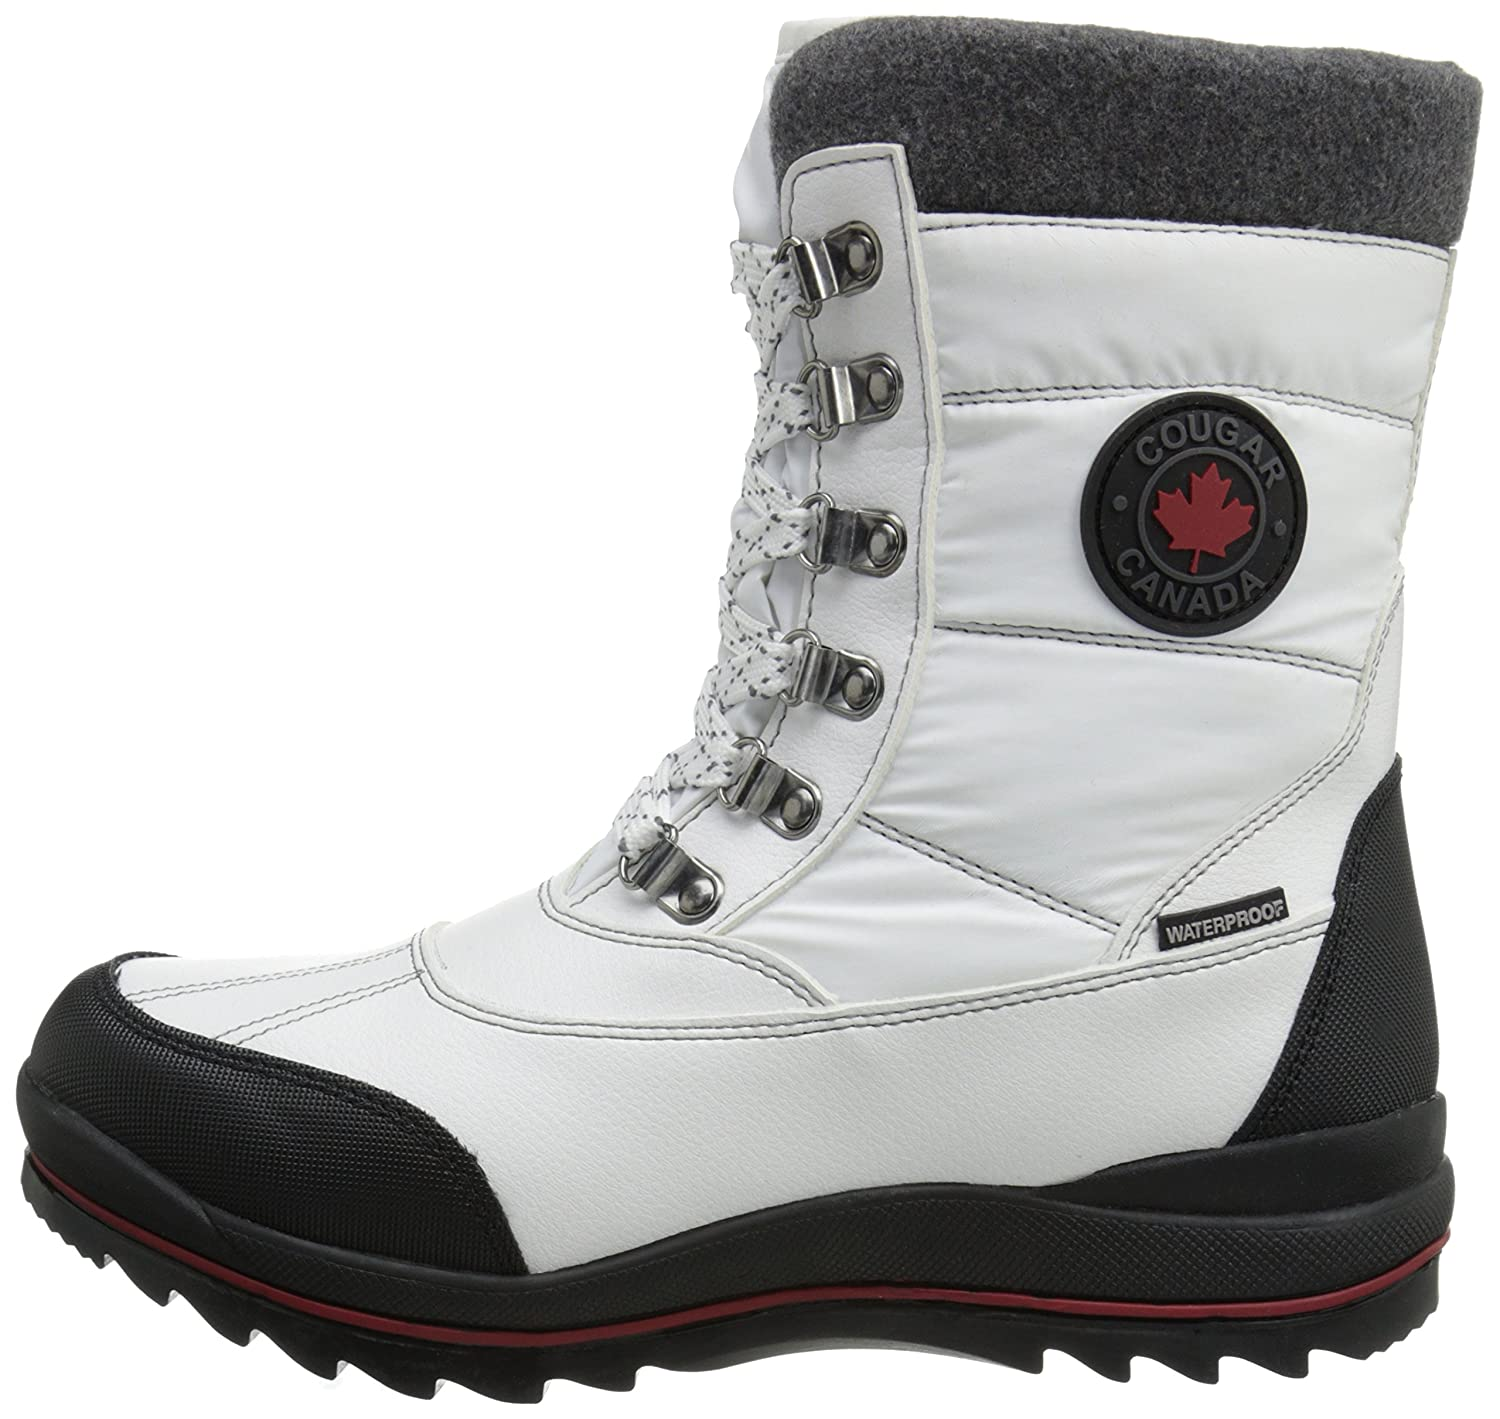 red mountain cougar women Cougar shoes women's creek black/red plaid 7 m by cougar shoes $9995 $ 99 95 prime free shipping on eligible orders 5 out of 5 stars 1 product description boots from cougar shoes cold weather will not slow you down this winter cougar women's vesta winter boot in black by cougar.